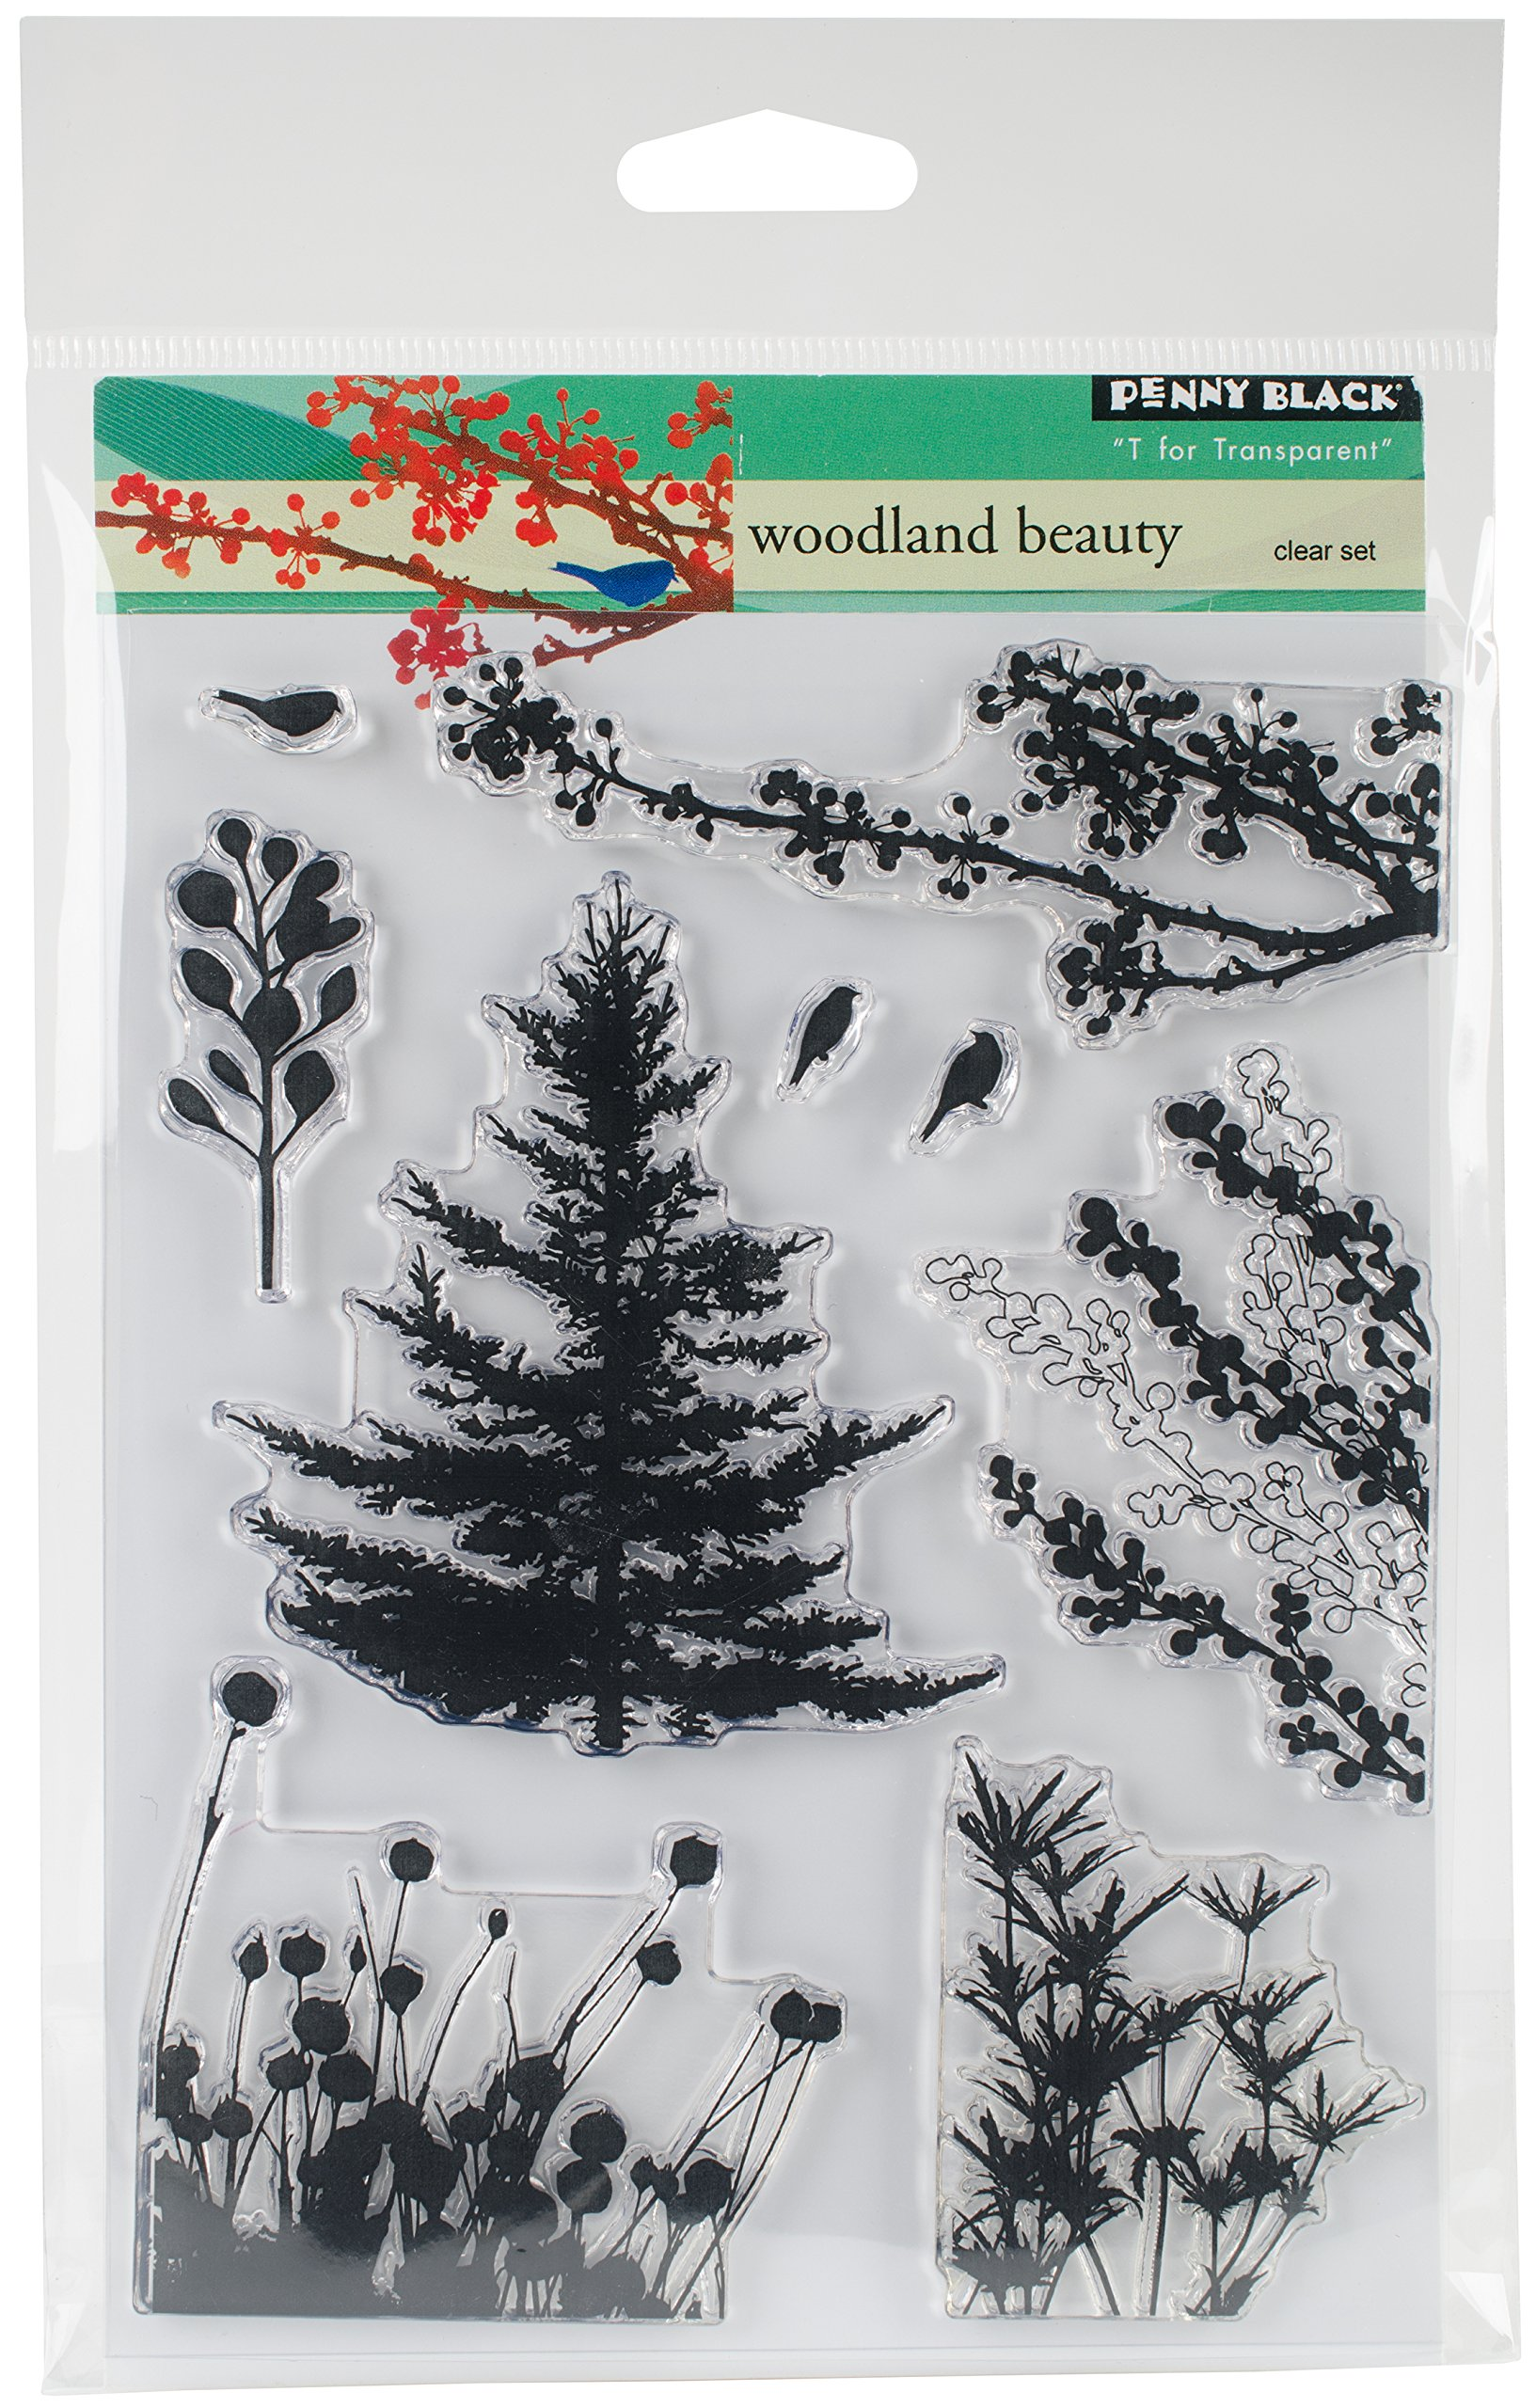 Penny Black 30-379 Clear Set Clear Stamp Set, 30-379,Woodland Beauty